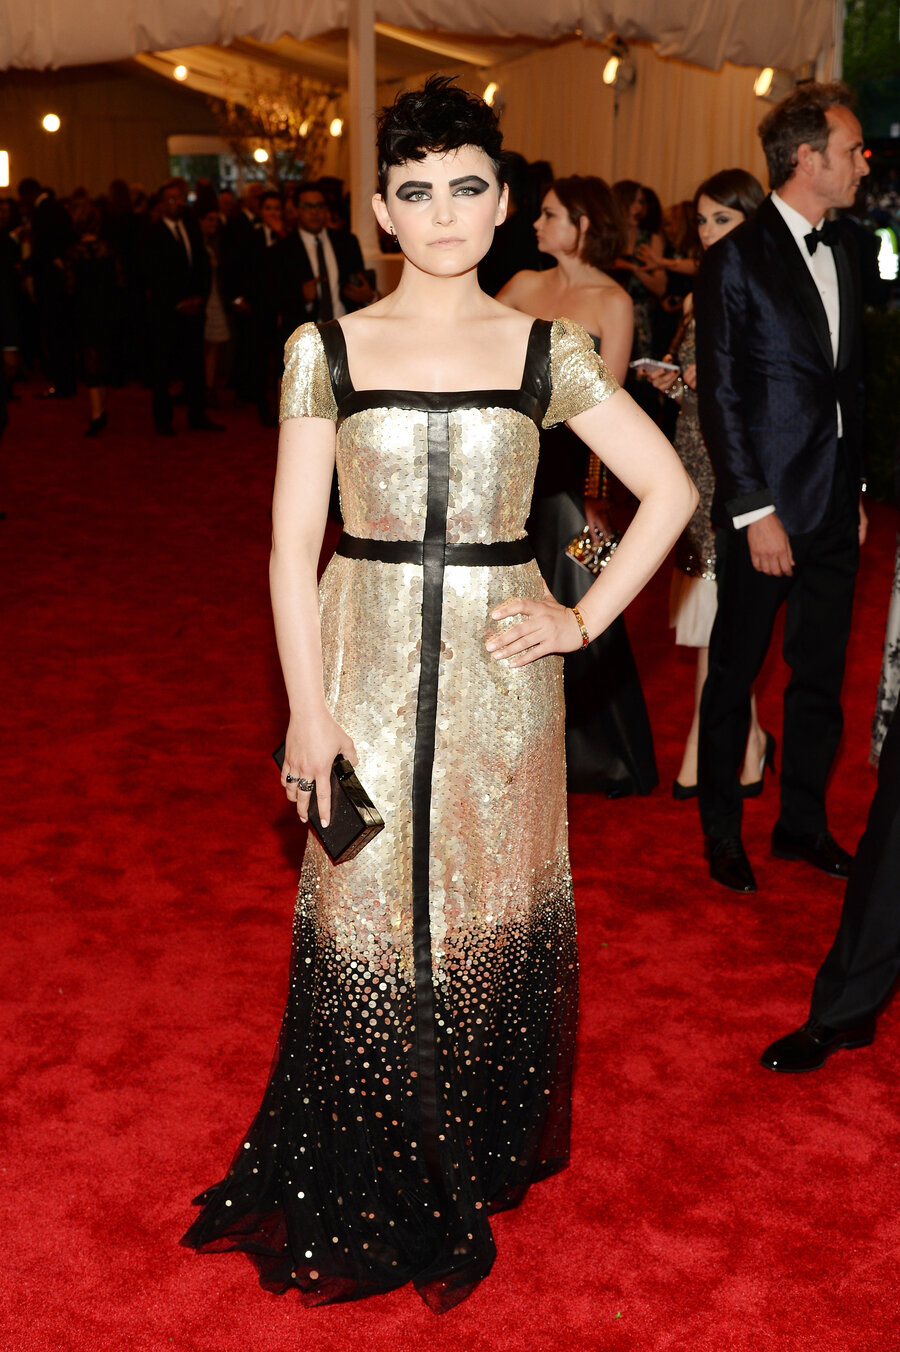 At The Met Ball, Those Are Some Crazy Dresses : Monkey See : NPR